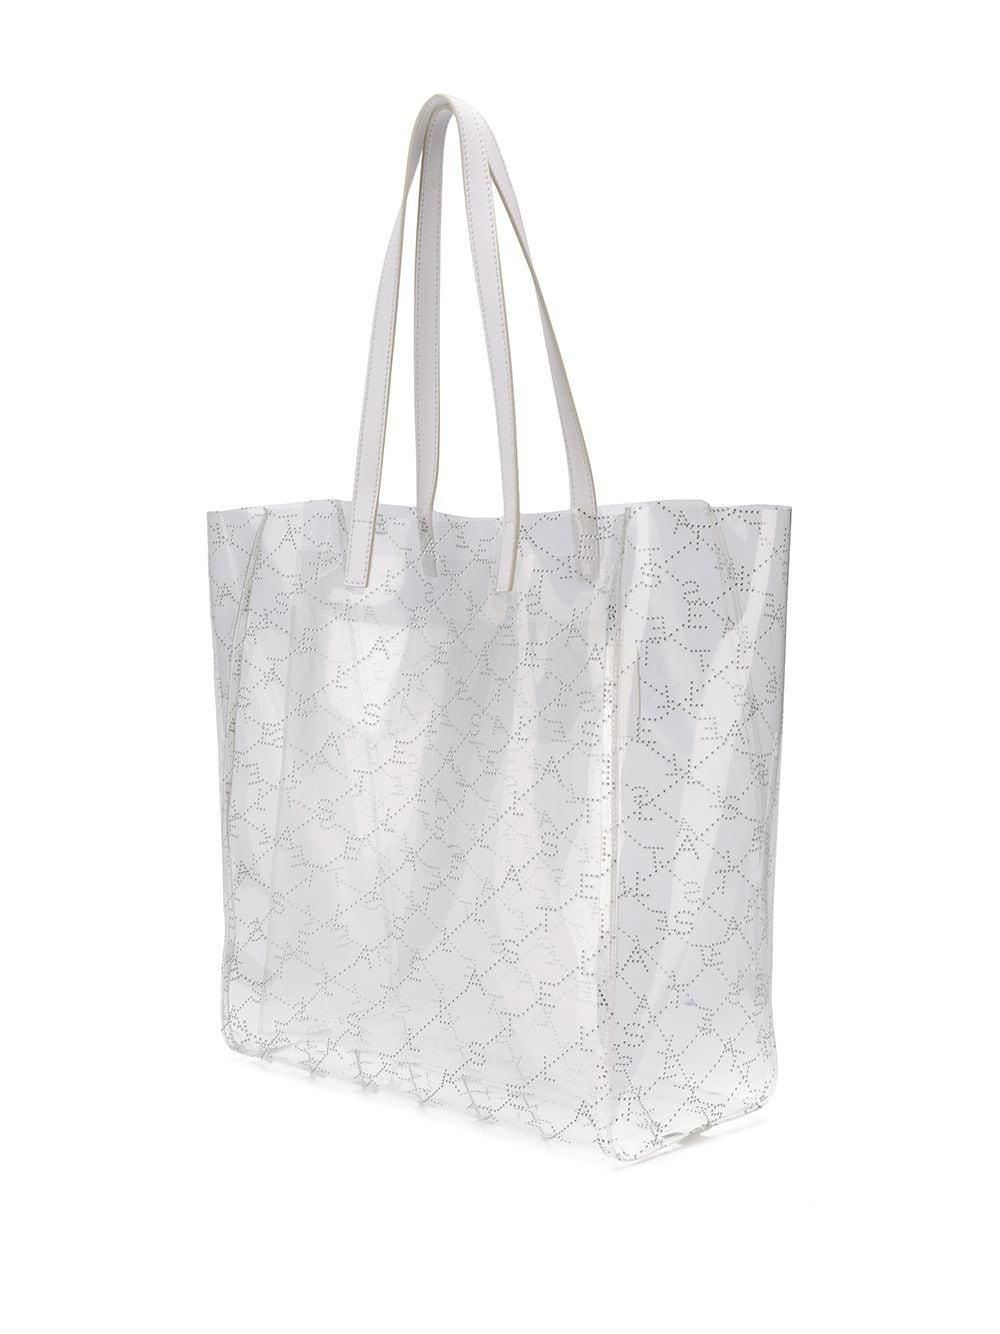 Sac cabas transparence médium Stella McCartney en coloris Blanc